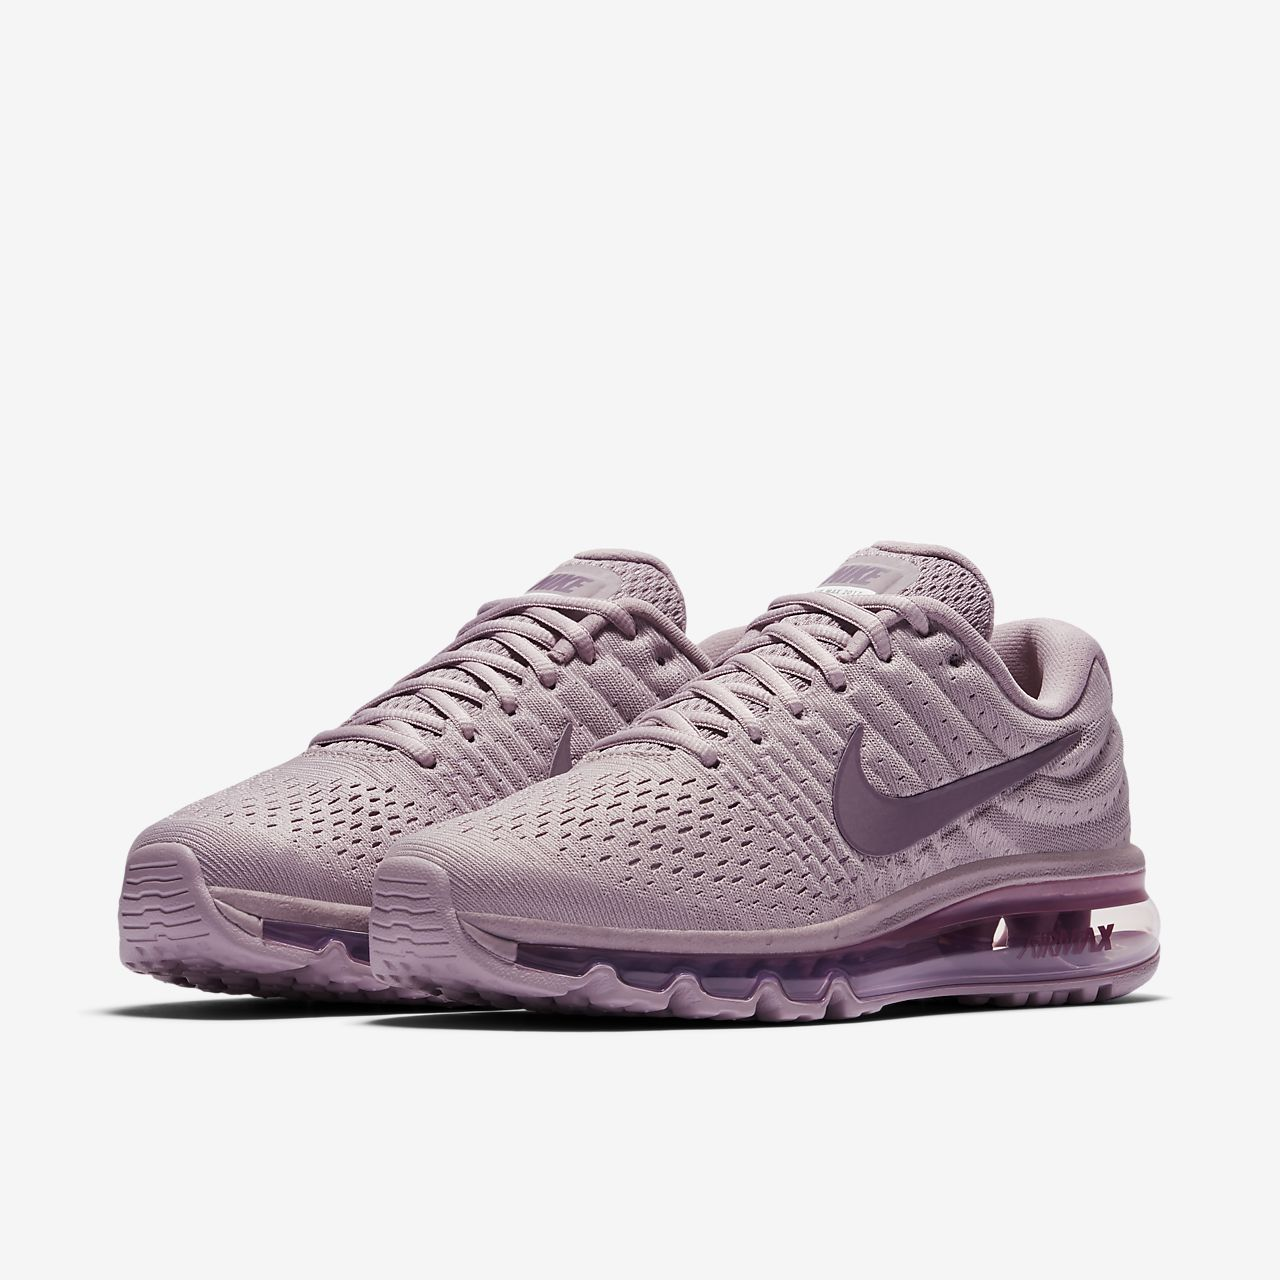 Chaussures Air Sneakers Sports Max Nike Violet Femme Running 2018 7wAx6U4